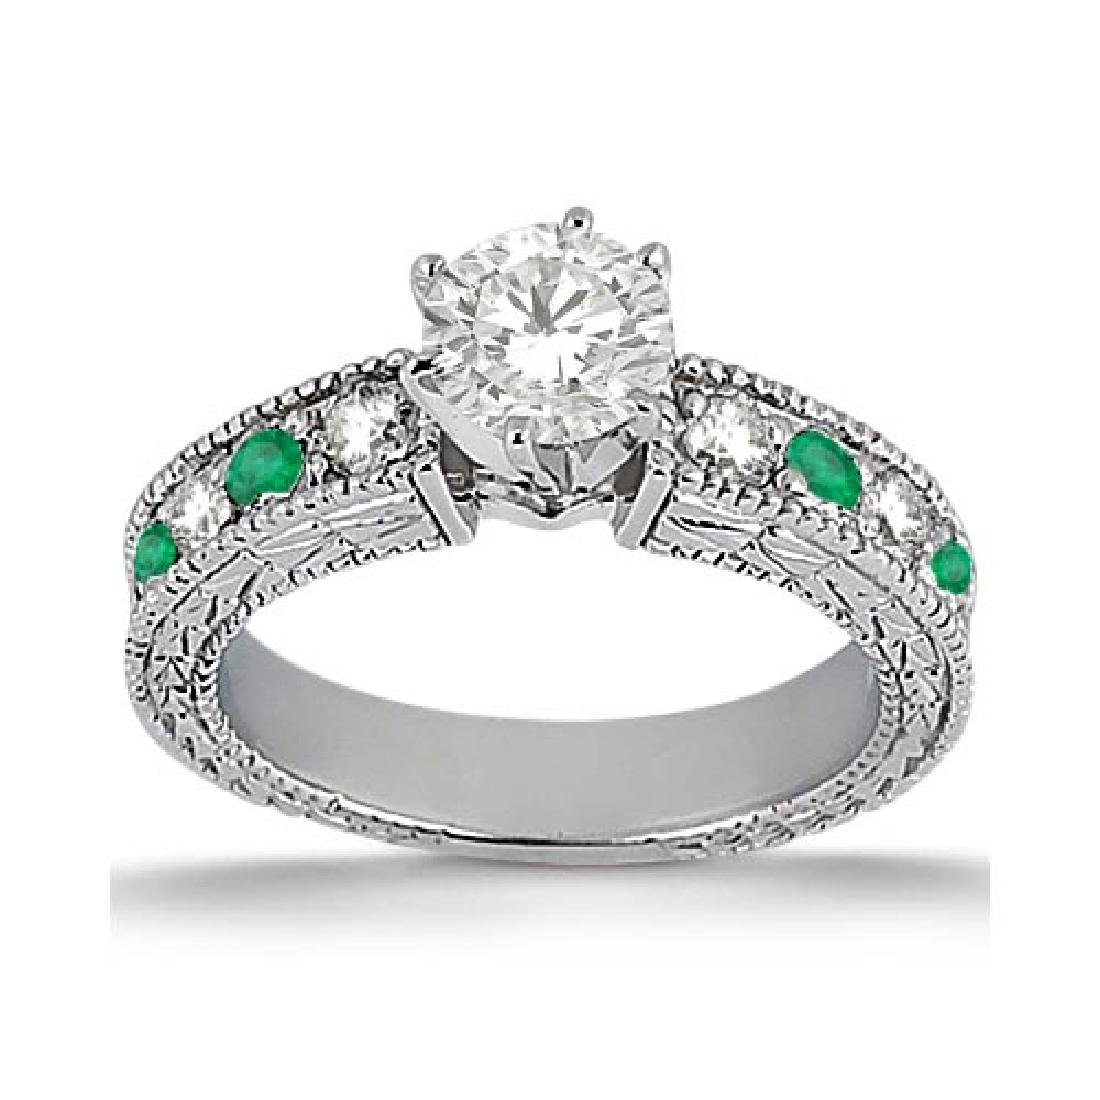 Antique Diamond and Emerald Engagement Ring 14k White G